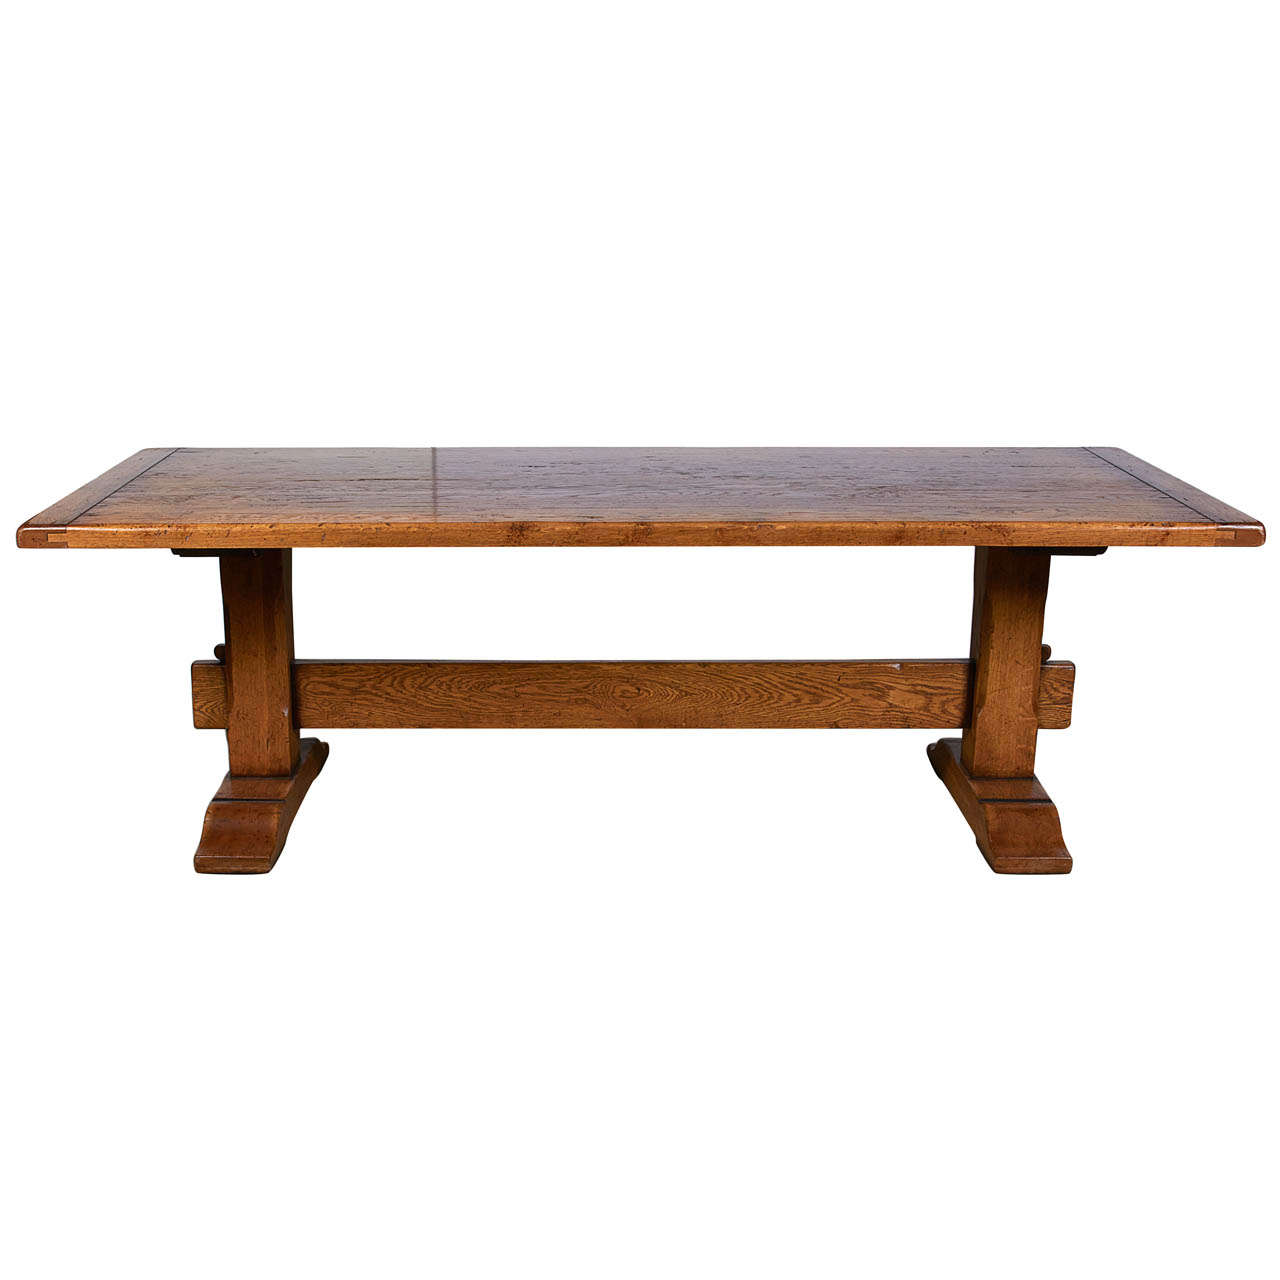 Oak dining table with trestle supports at 1stdibs for Dining table support